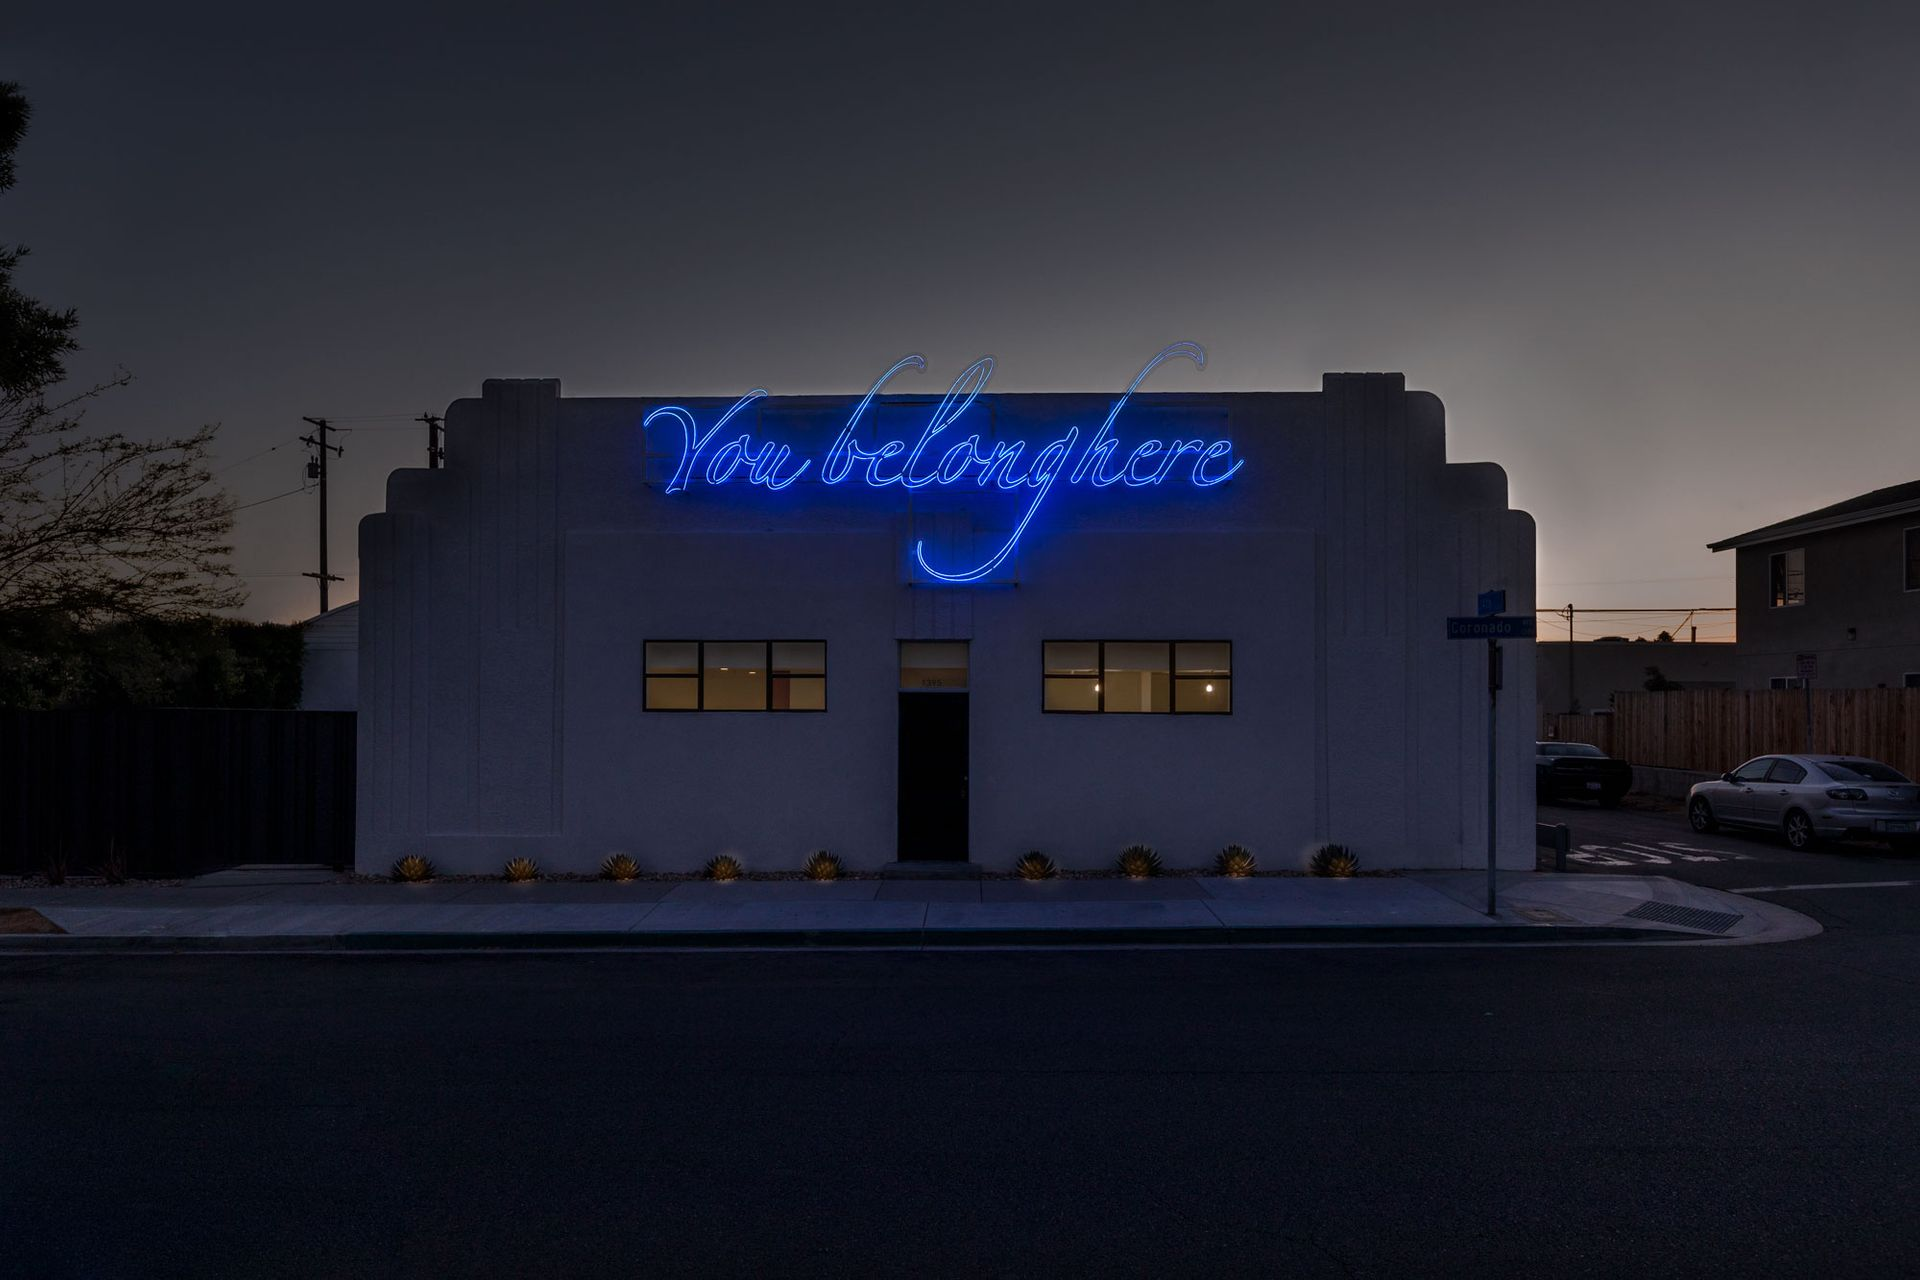 Tavares Strachan's neon artwork You Belong Here on the front of Compound building in Long Beach Photo: Laure Joilet